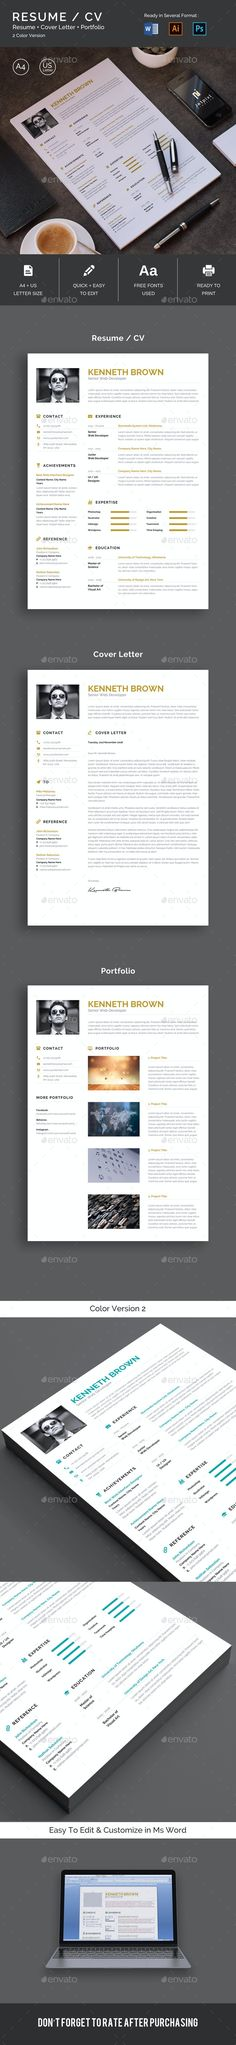 Resume CV by iDoodle | GraphicRiver Resume Layout, One Page Resume, Resume Cv, Cv Design, Resume Design, Graphic Design, Best Resume Template, Cv Template, Stationery Templates